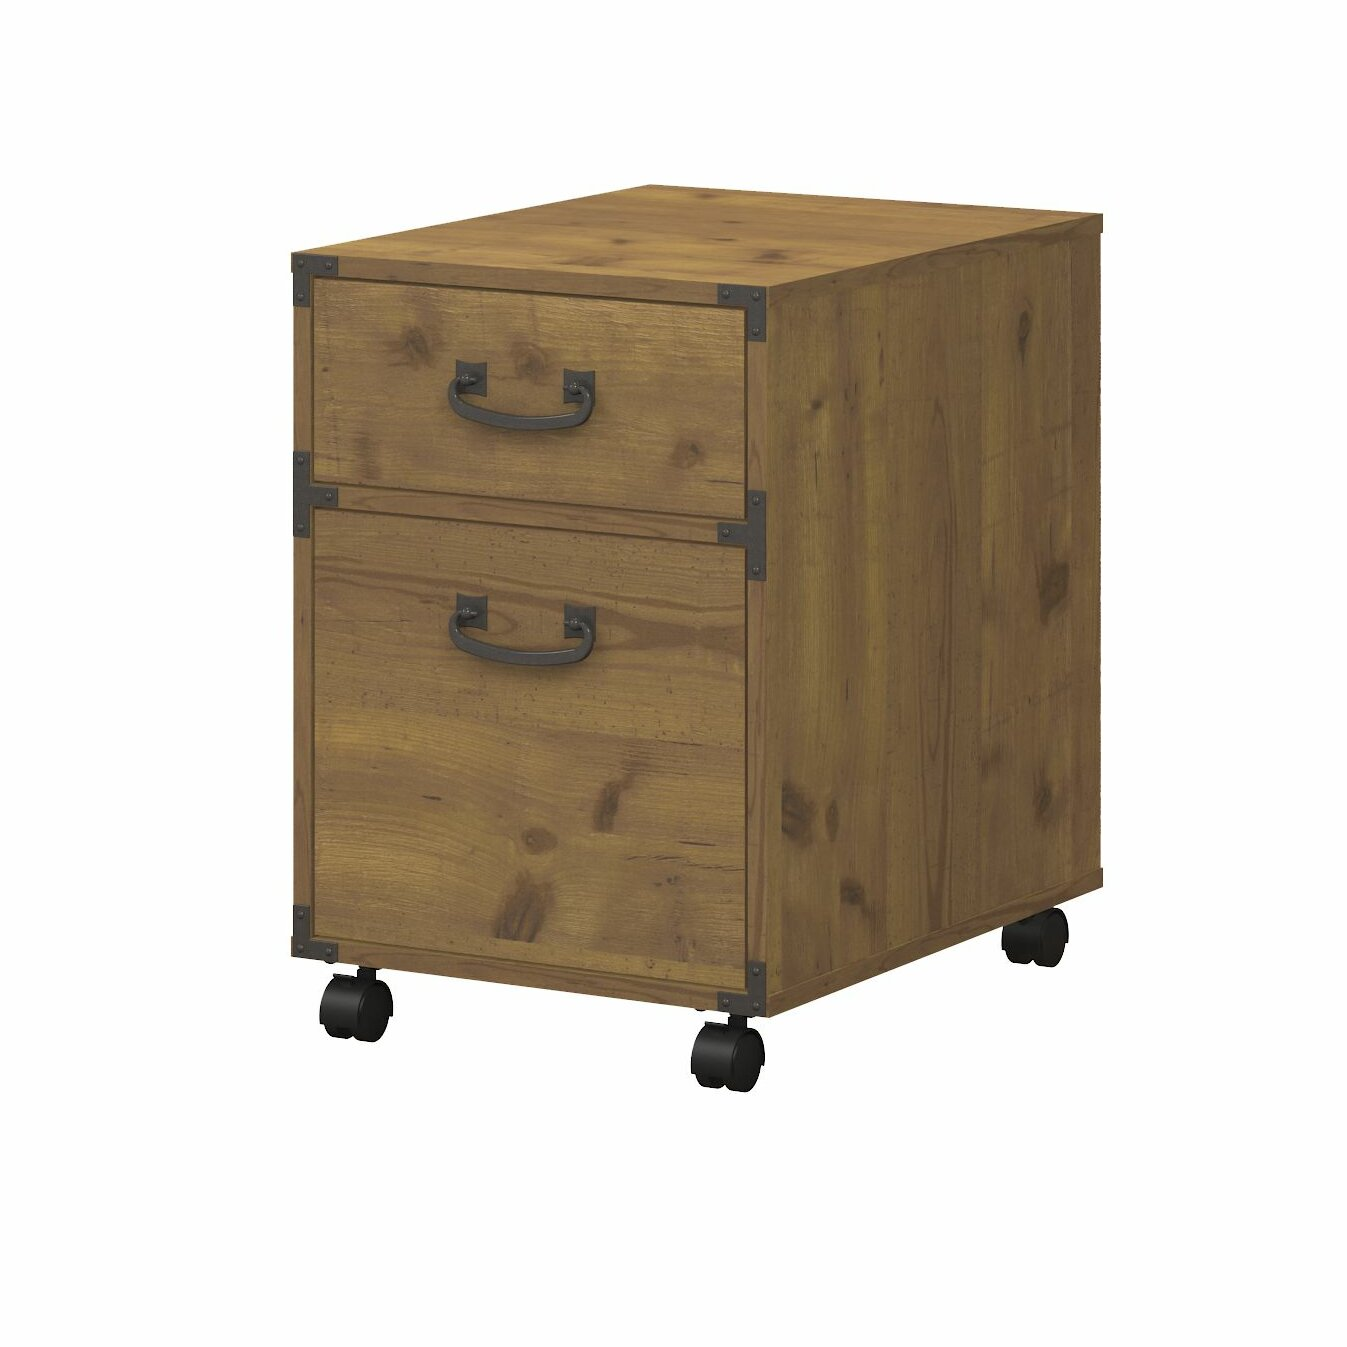 Roll Around File Cabinets Rolling Filing Cabinets Youll Love Wayfair